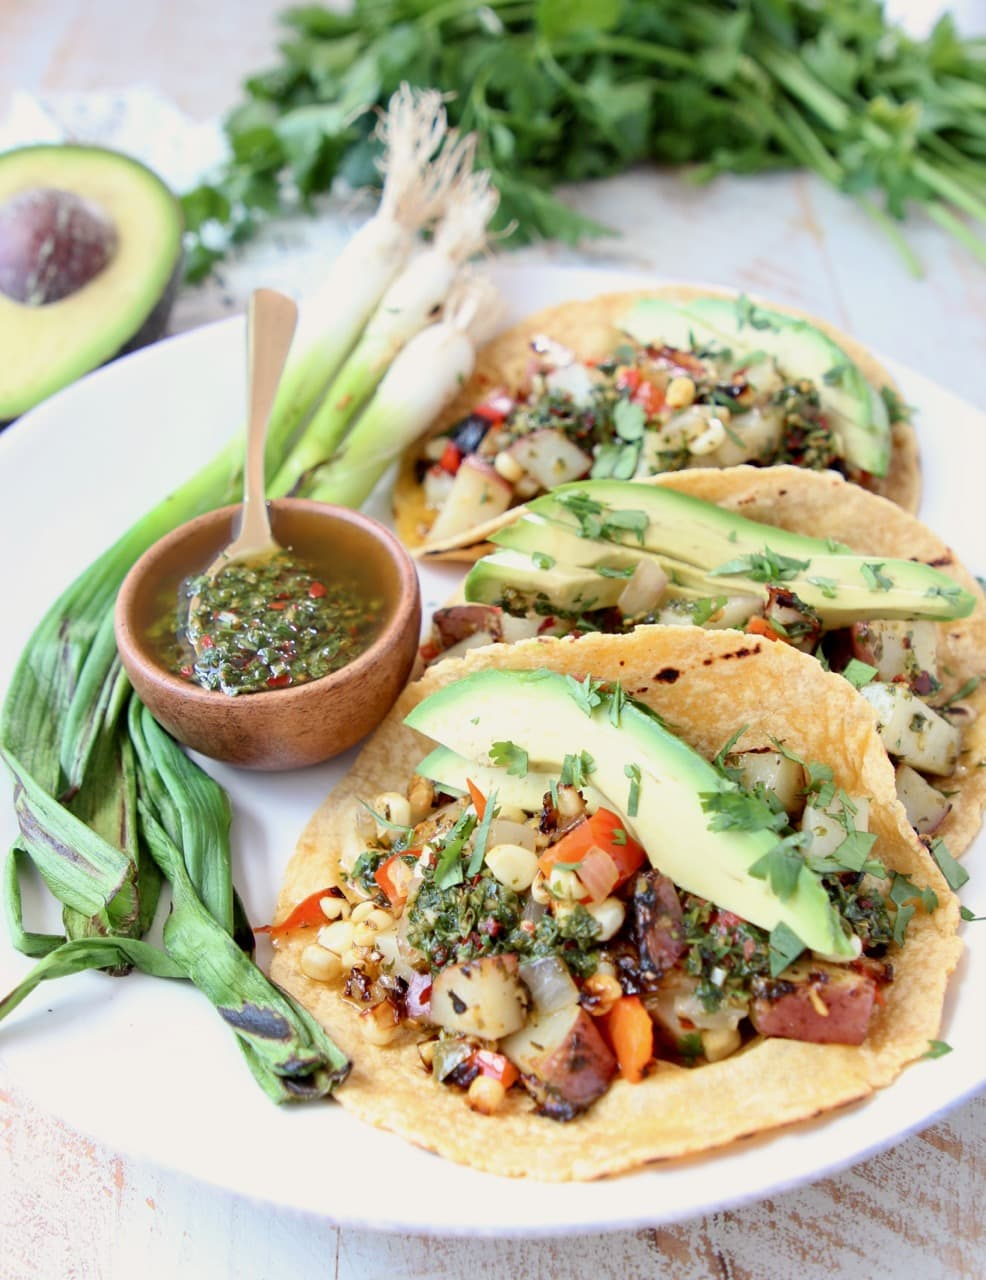 Grilled Vegan Tacos with Potatoes, Peppers, Avocado and Chimichurri Sauce